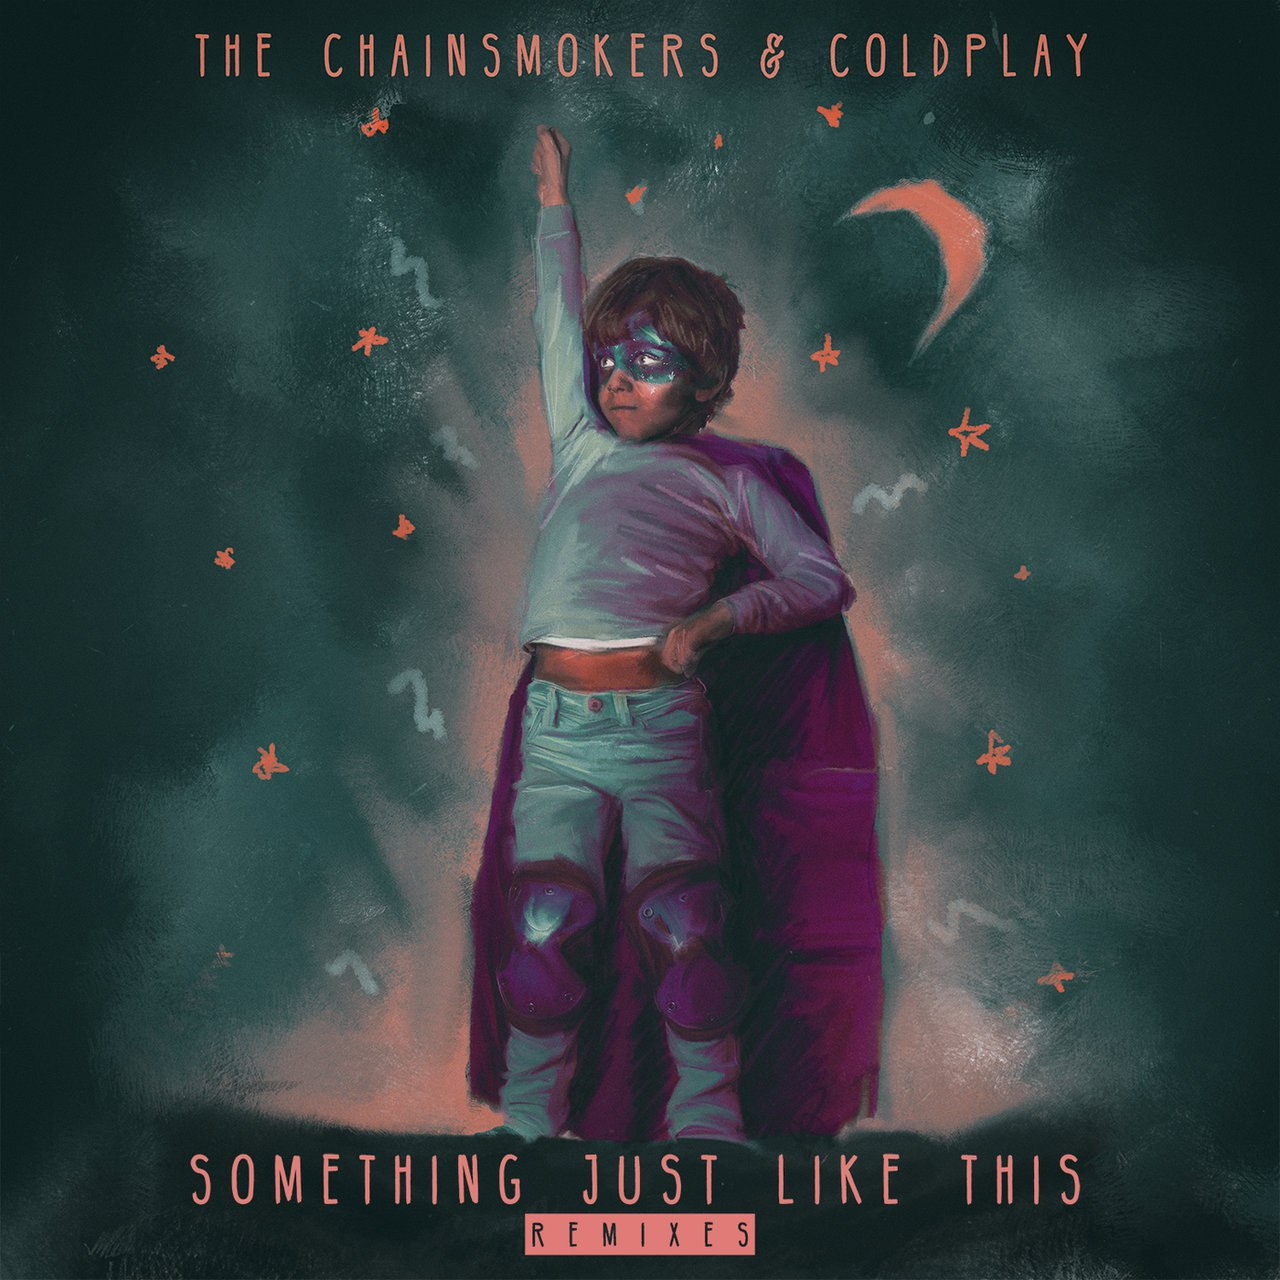 The Chainsmokers & Coldplay - Something Just Like This (Alesso Remix)